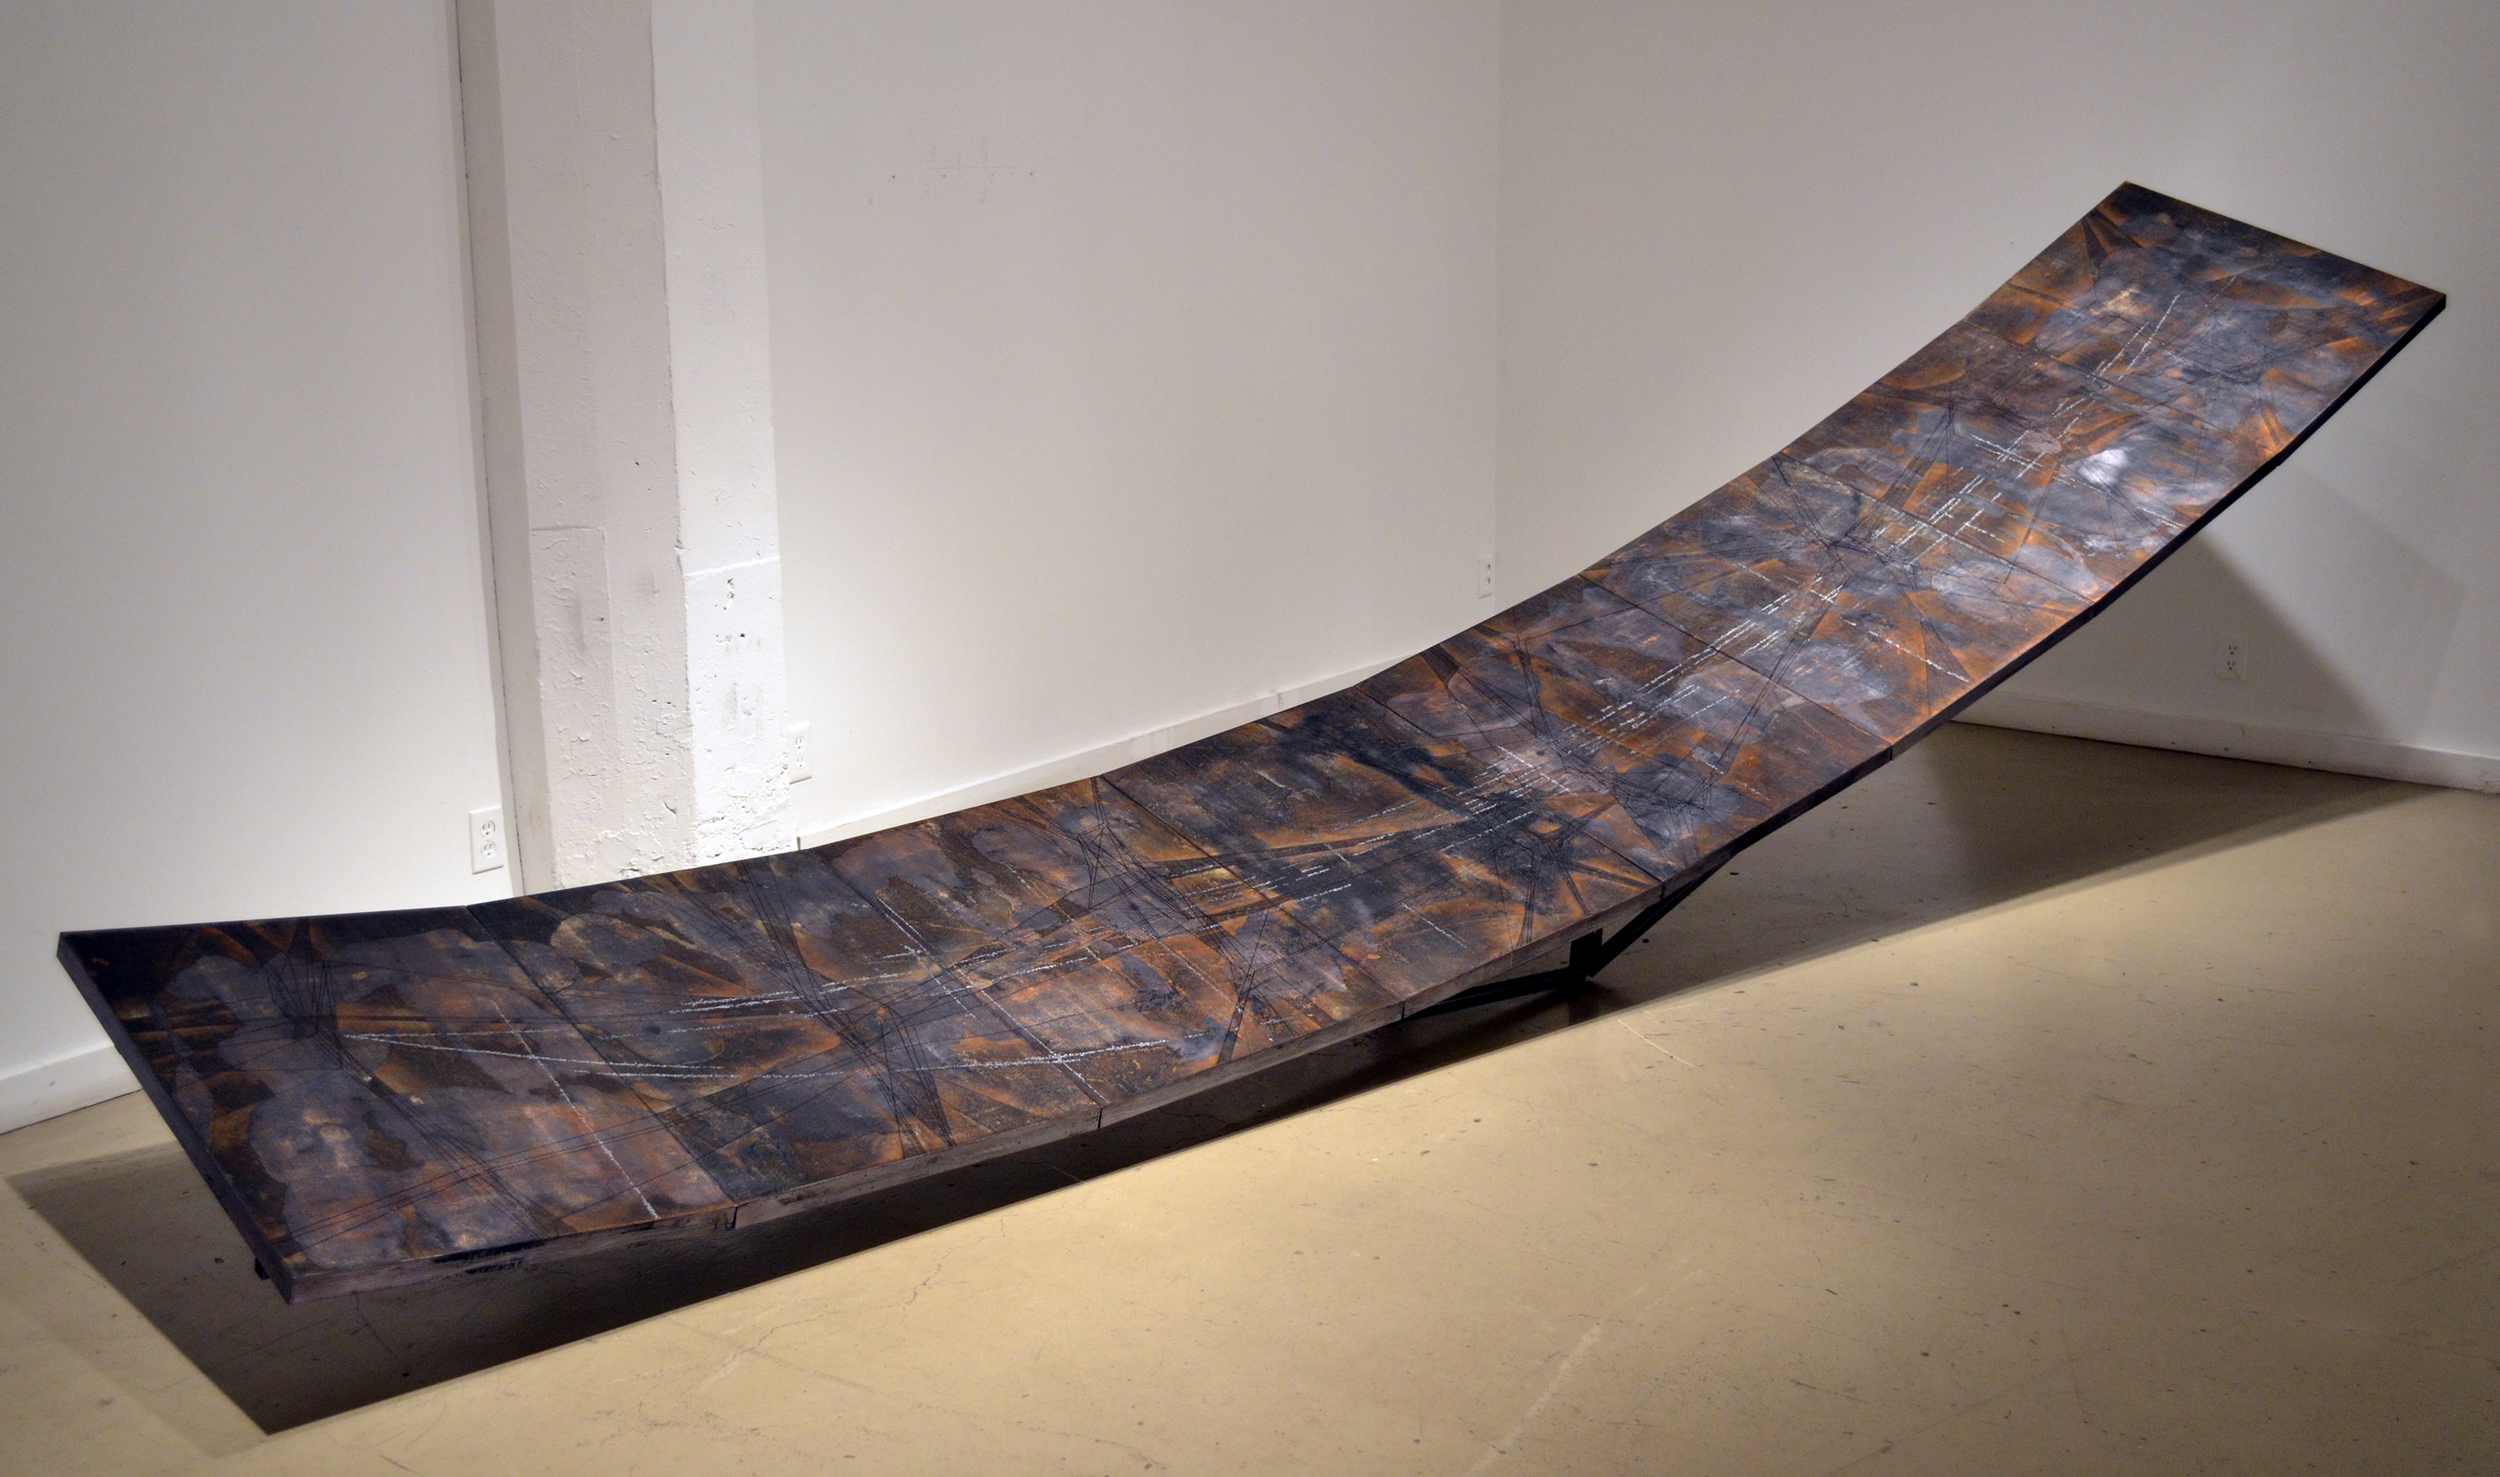 """Balance    woodcut monoprints with metallic foil, mounted on prepared panels, arranged on an inverted arc structure. paper, ink, metallic foil, wood, steel 192"""" x 32"""" x 48""""   (16' x 2'6"""" x 4')   2012  The making of  Balance  presented me with a fundamental question.   At what point does the supportive sculptural structure become just a means to display my prints?   I dealt with this conundrum for over a year with this work.   I felt that the printed images did not go well with the inverted arc, making me question my approach with combining prints with sculptures.   Ultimately, geometry came to the rescue with the addition of the strong graphic drawings on the prints."""